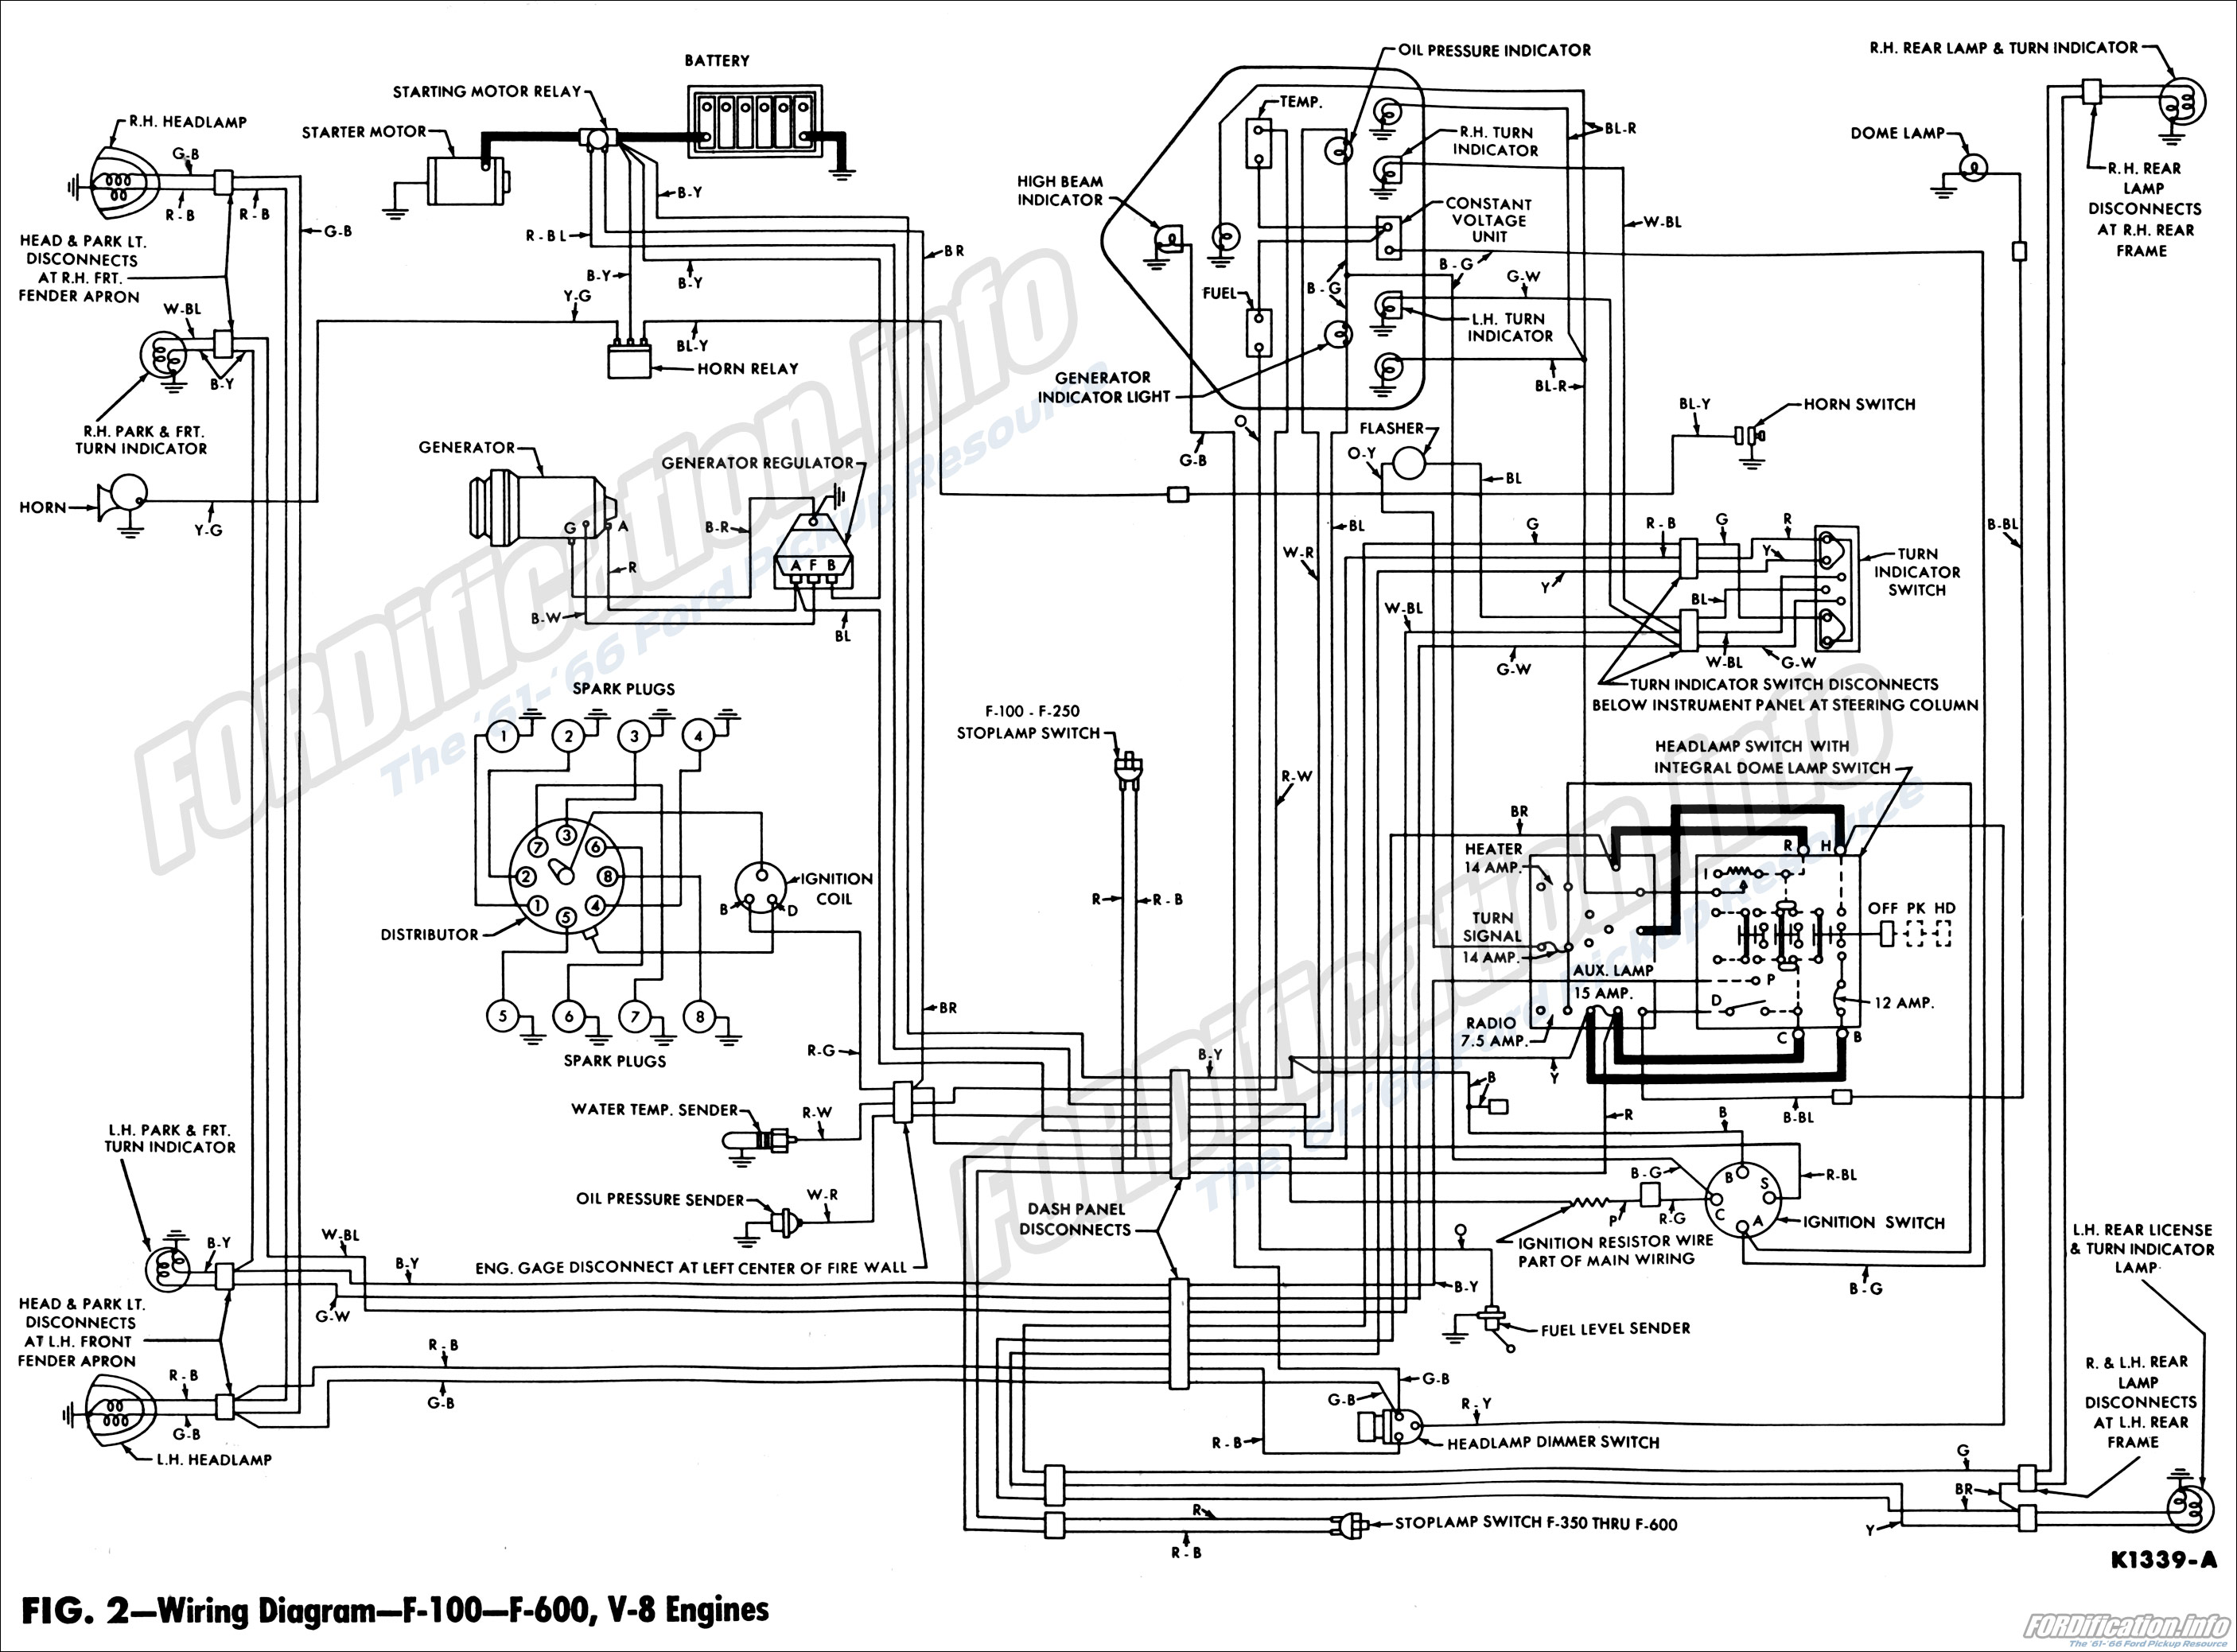 1962 ford truck wiring diagrams - fordification.info - the '61-'66 ford  pickup resource  fordification.info